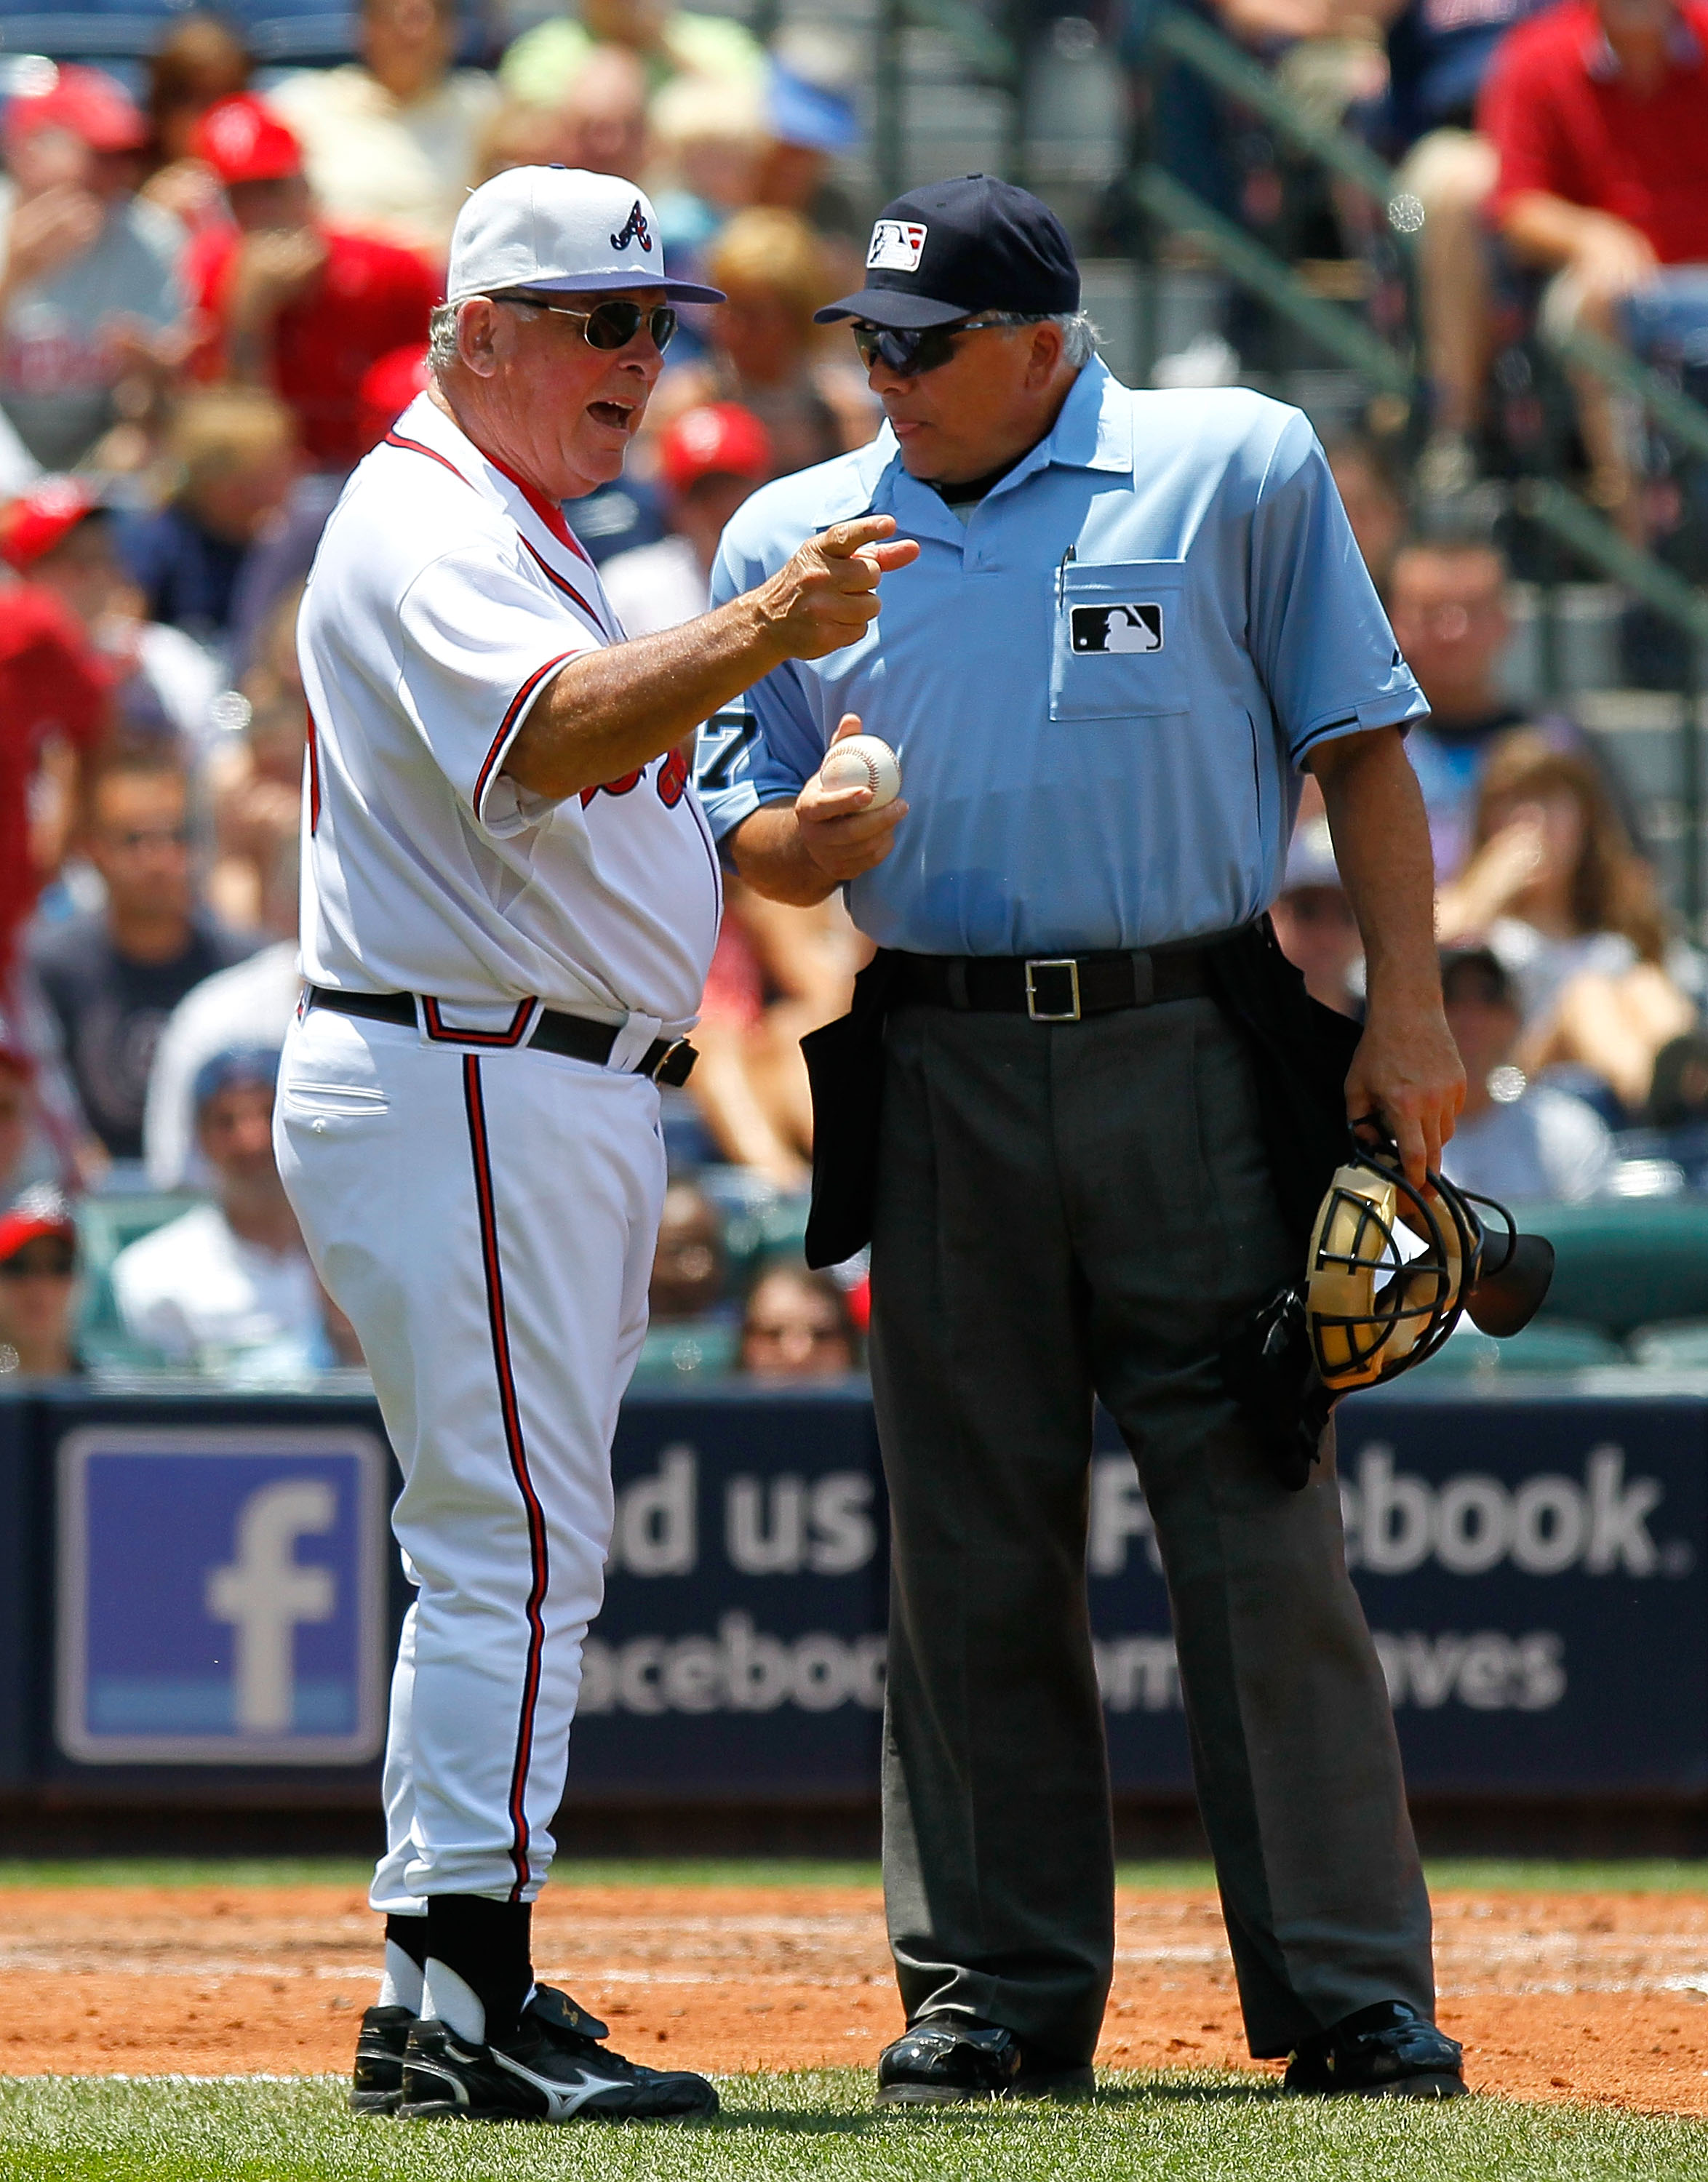 ATLANTA - MAY 31:  Manager Bobby Cox #6 of the Atlanta Braves argues a call with homeplate umpire Larry Vanover #27 in the third inning against the Philadelphia Phillies at Turner Field on May 31, 2010 in Atlanta, Georgia.  (Photo by Kevin C. Cox/Getty Im